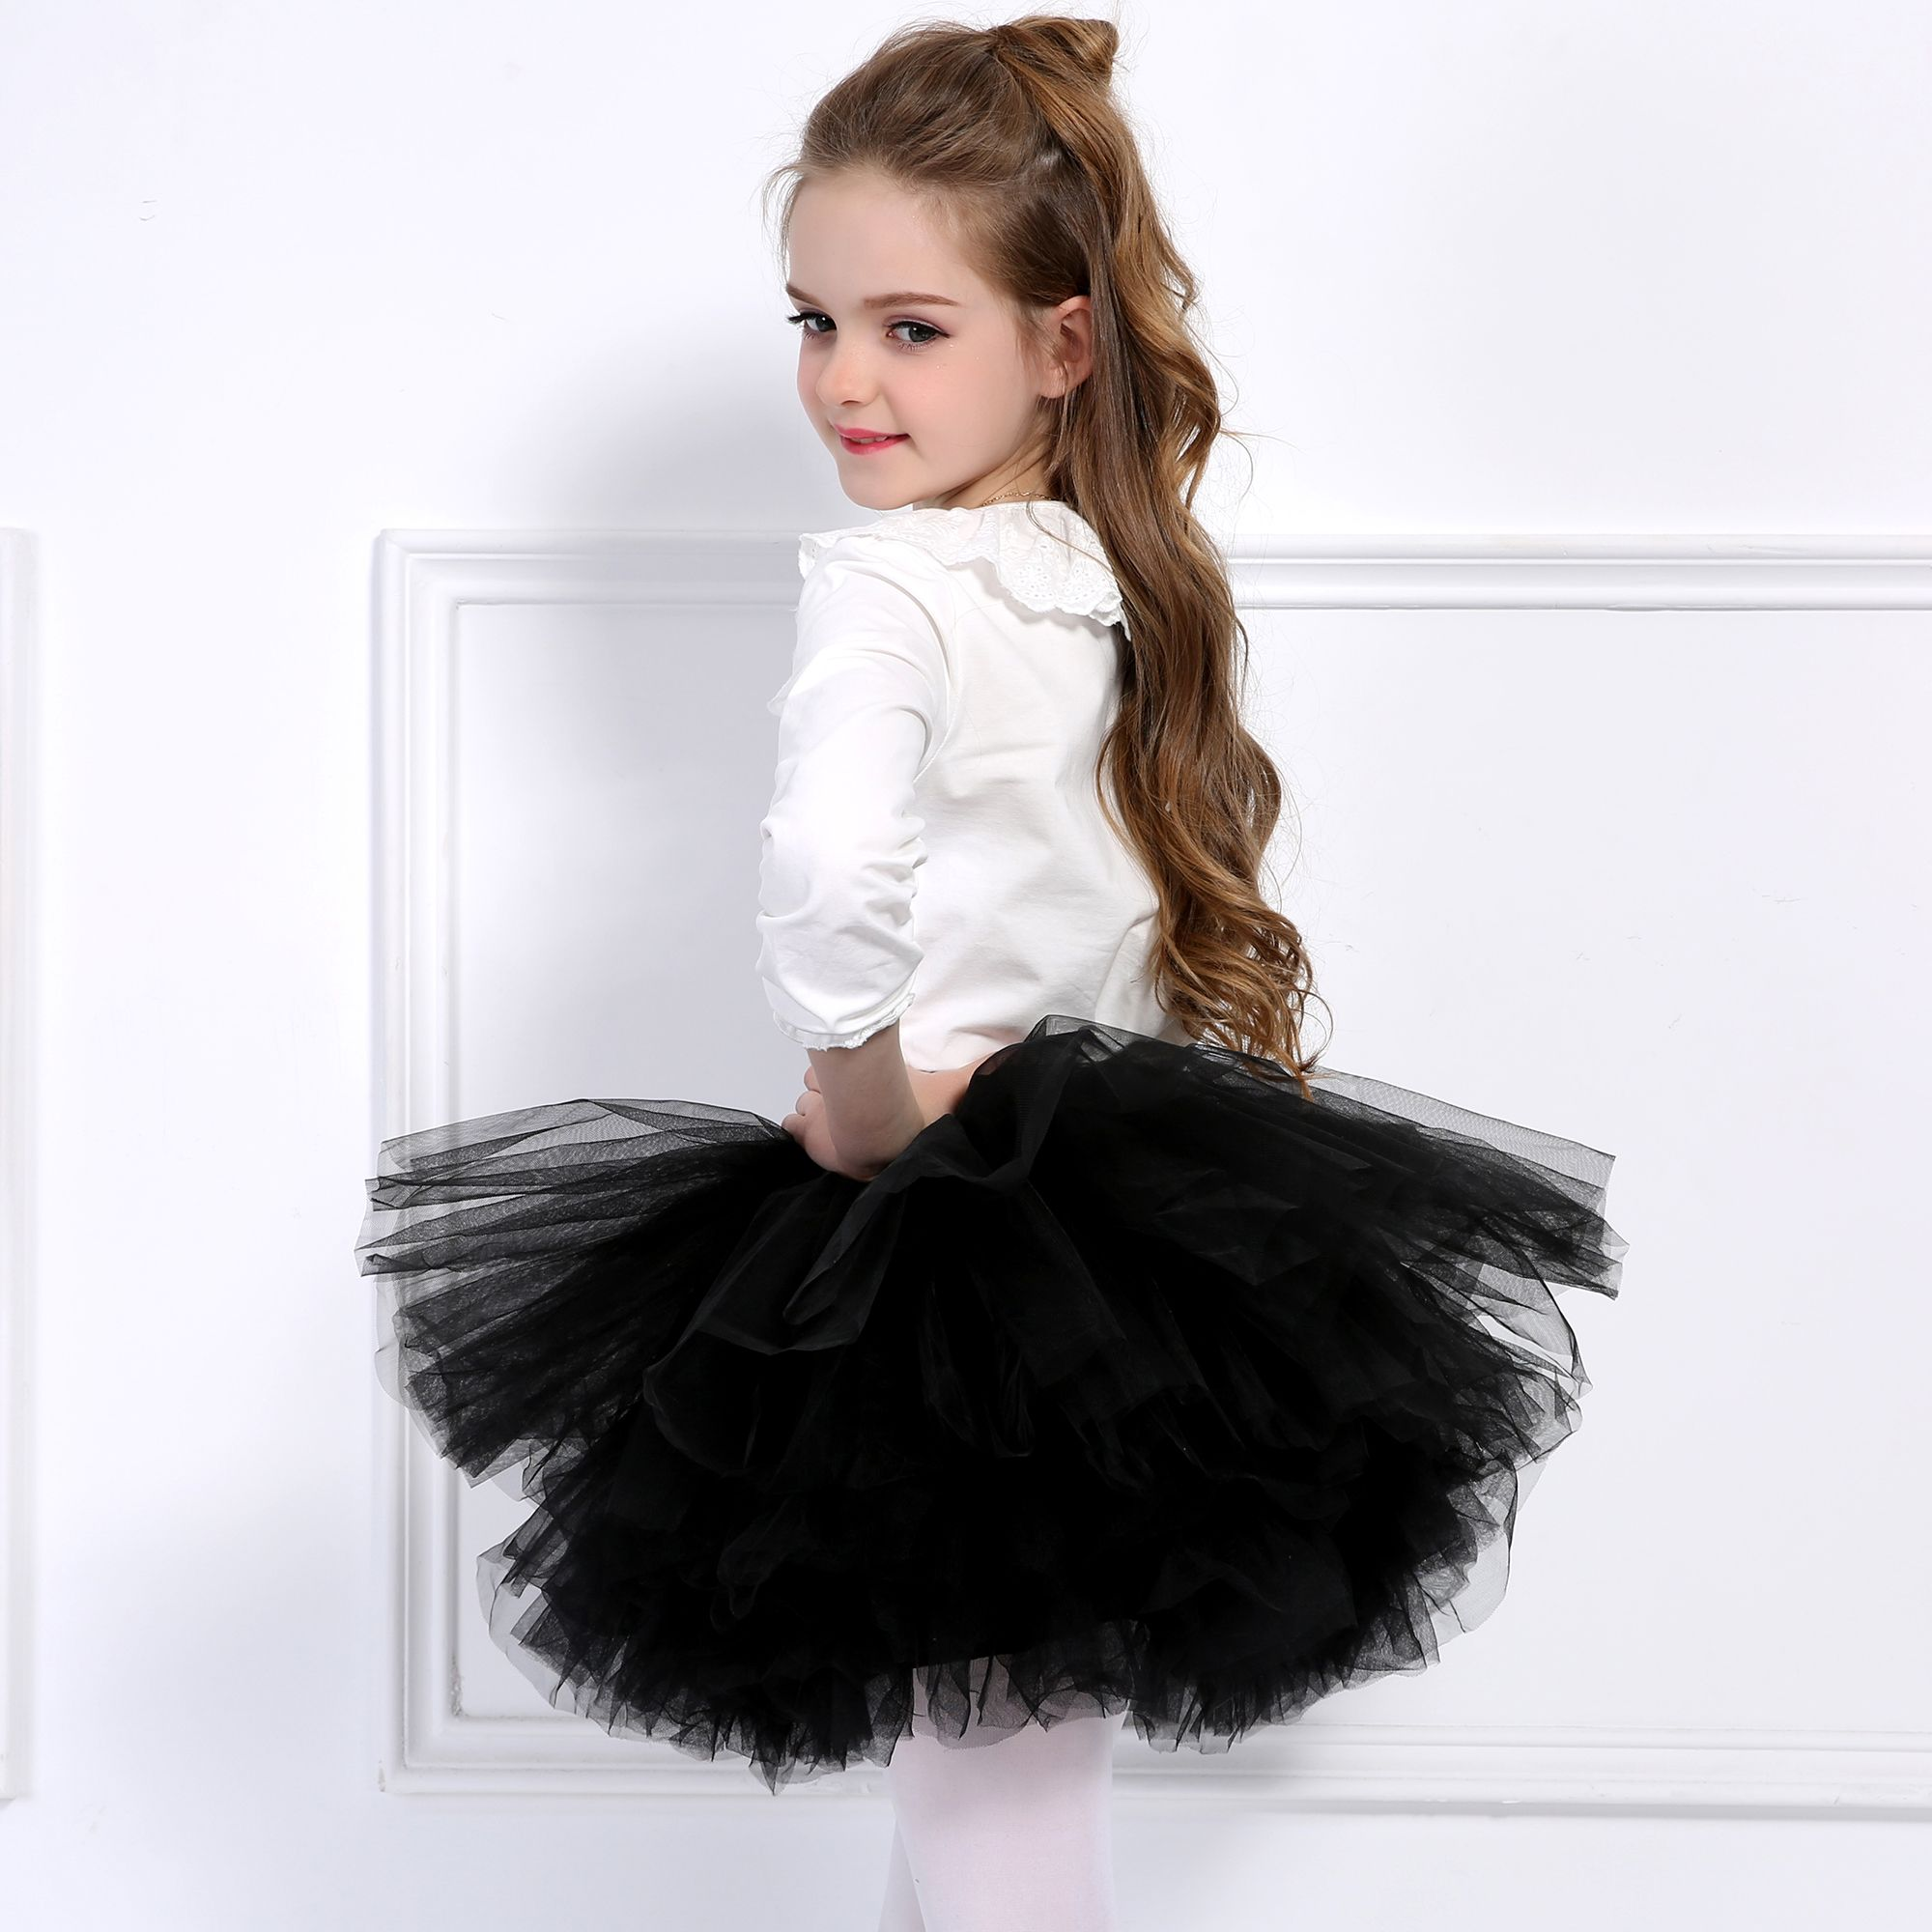 a16c847c2 Find More Skirts Information about 6 Layers Extra Fluffy Baby Girls ...